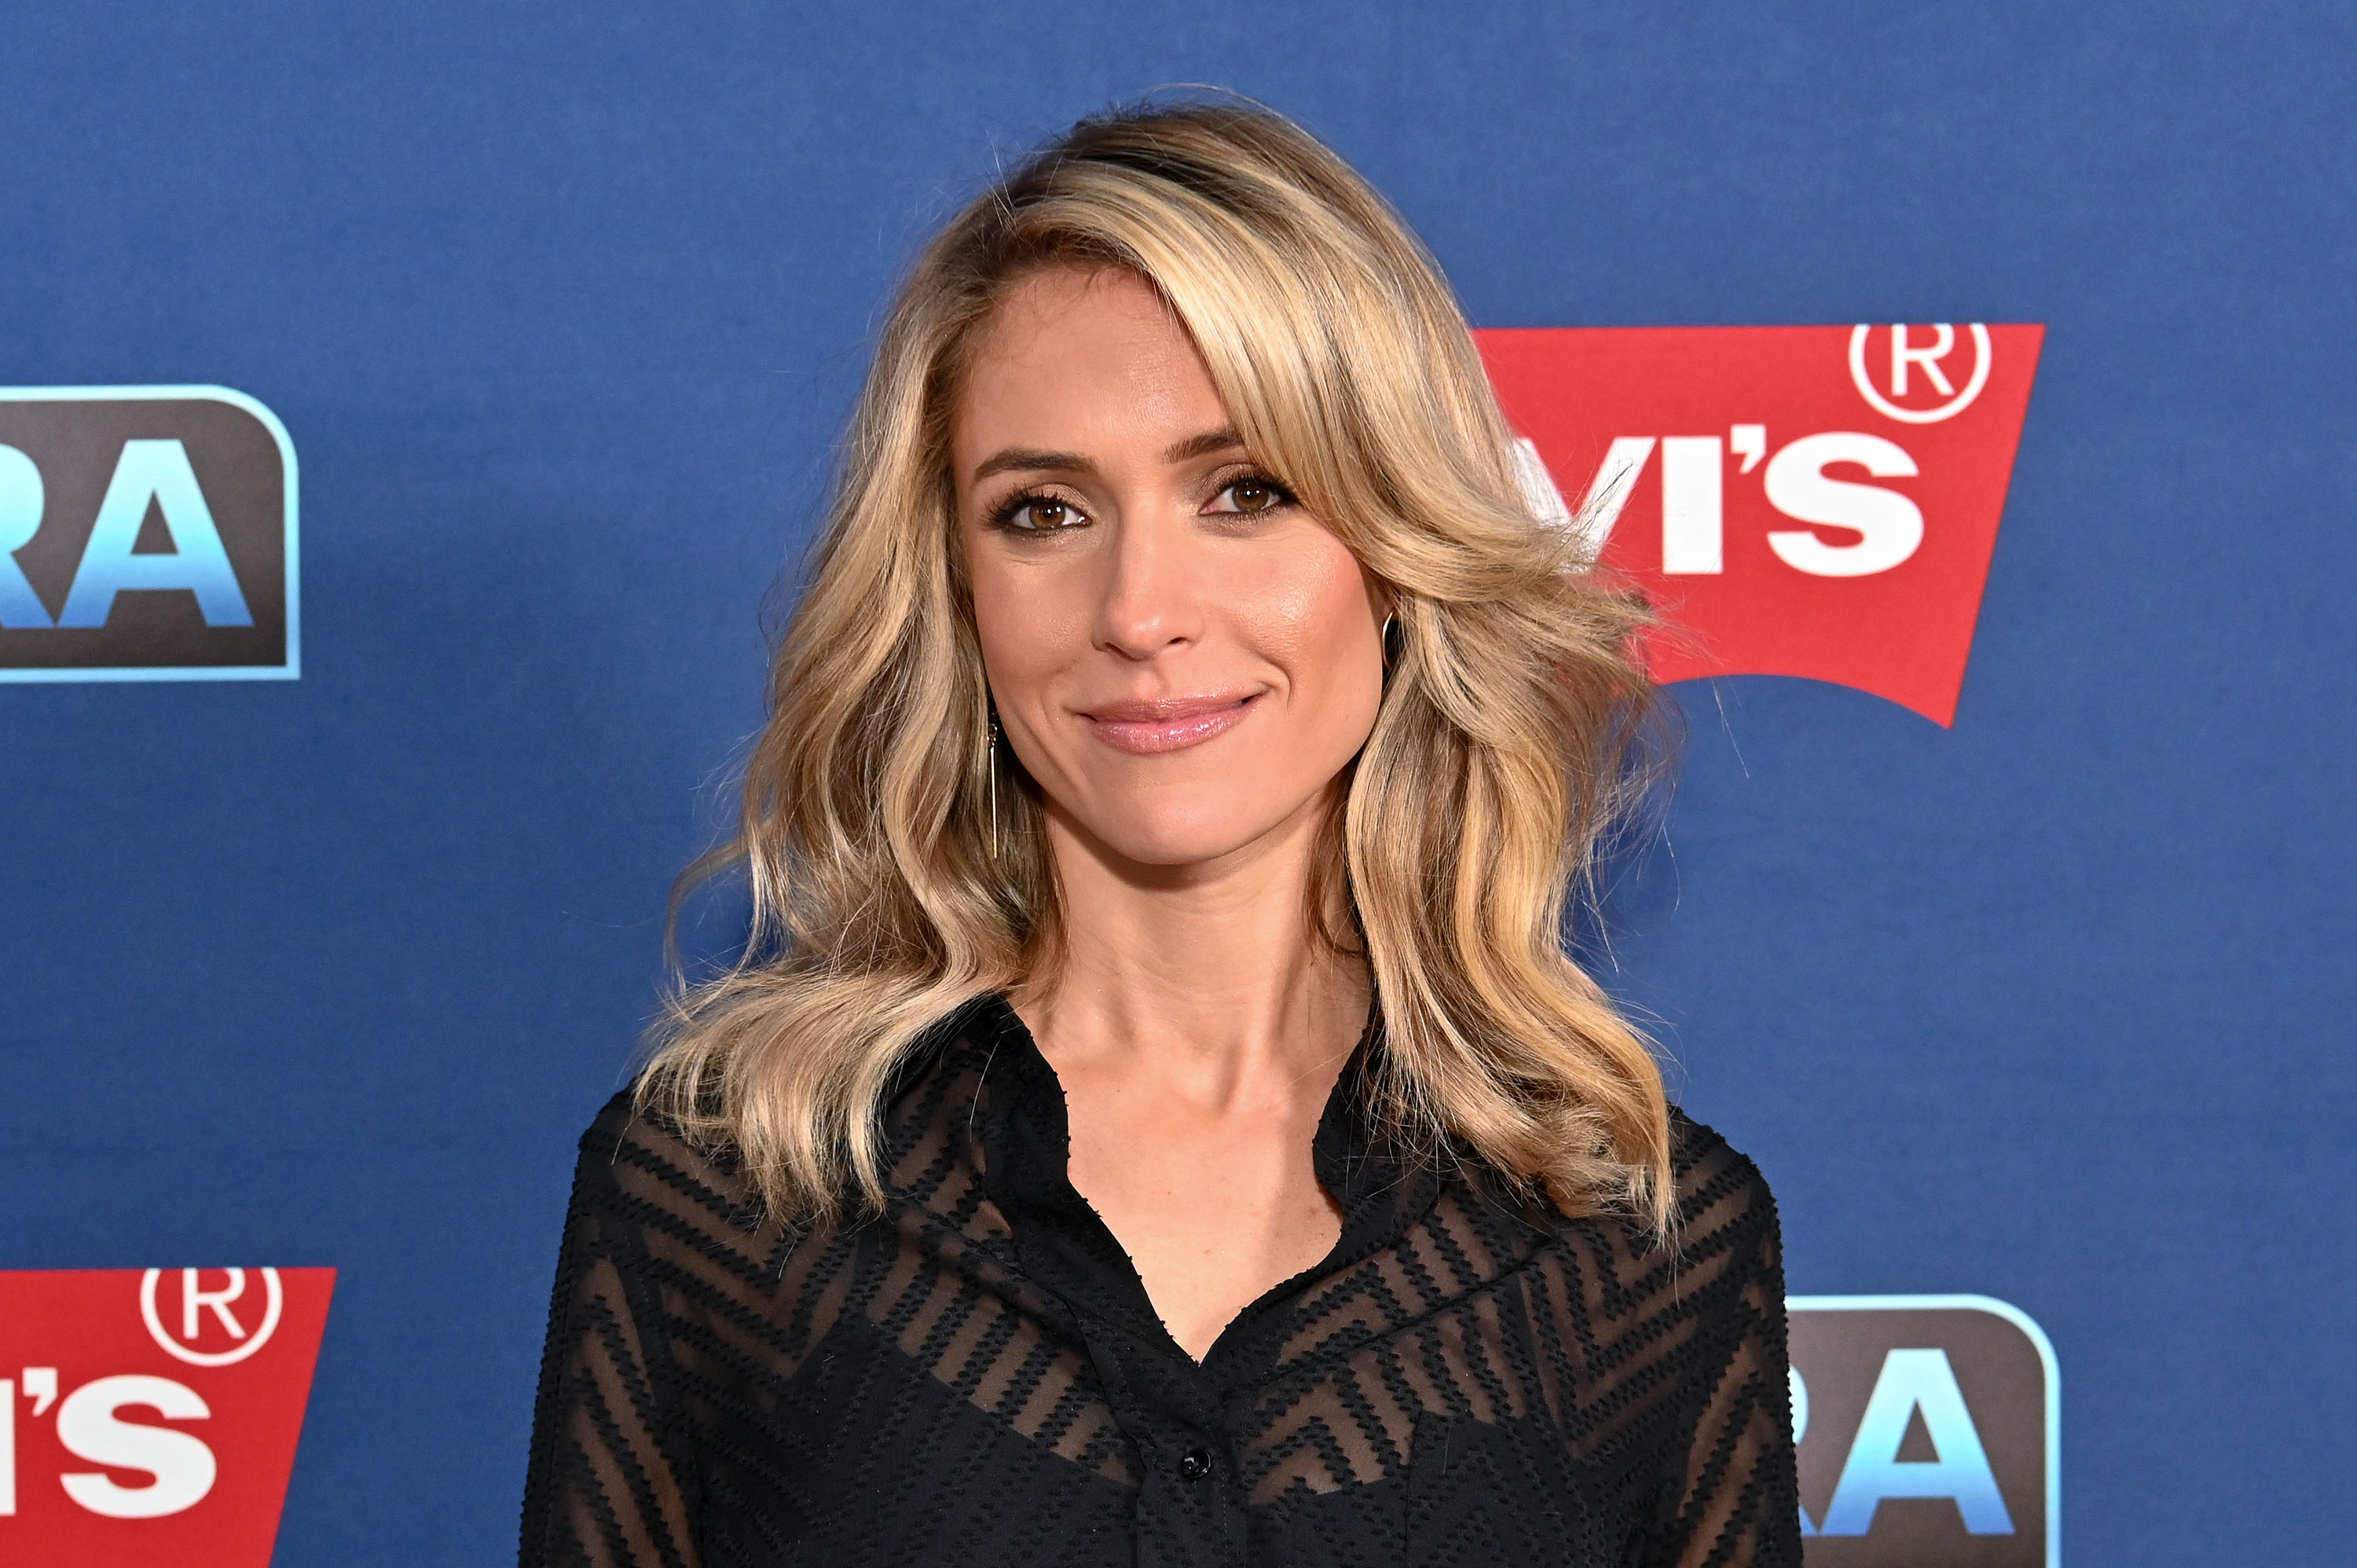 Kristin Cavallari called out for 'super insensitive' 9/11 post, fires social media staffer